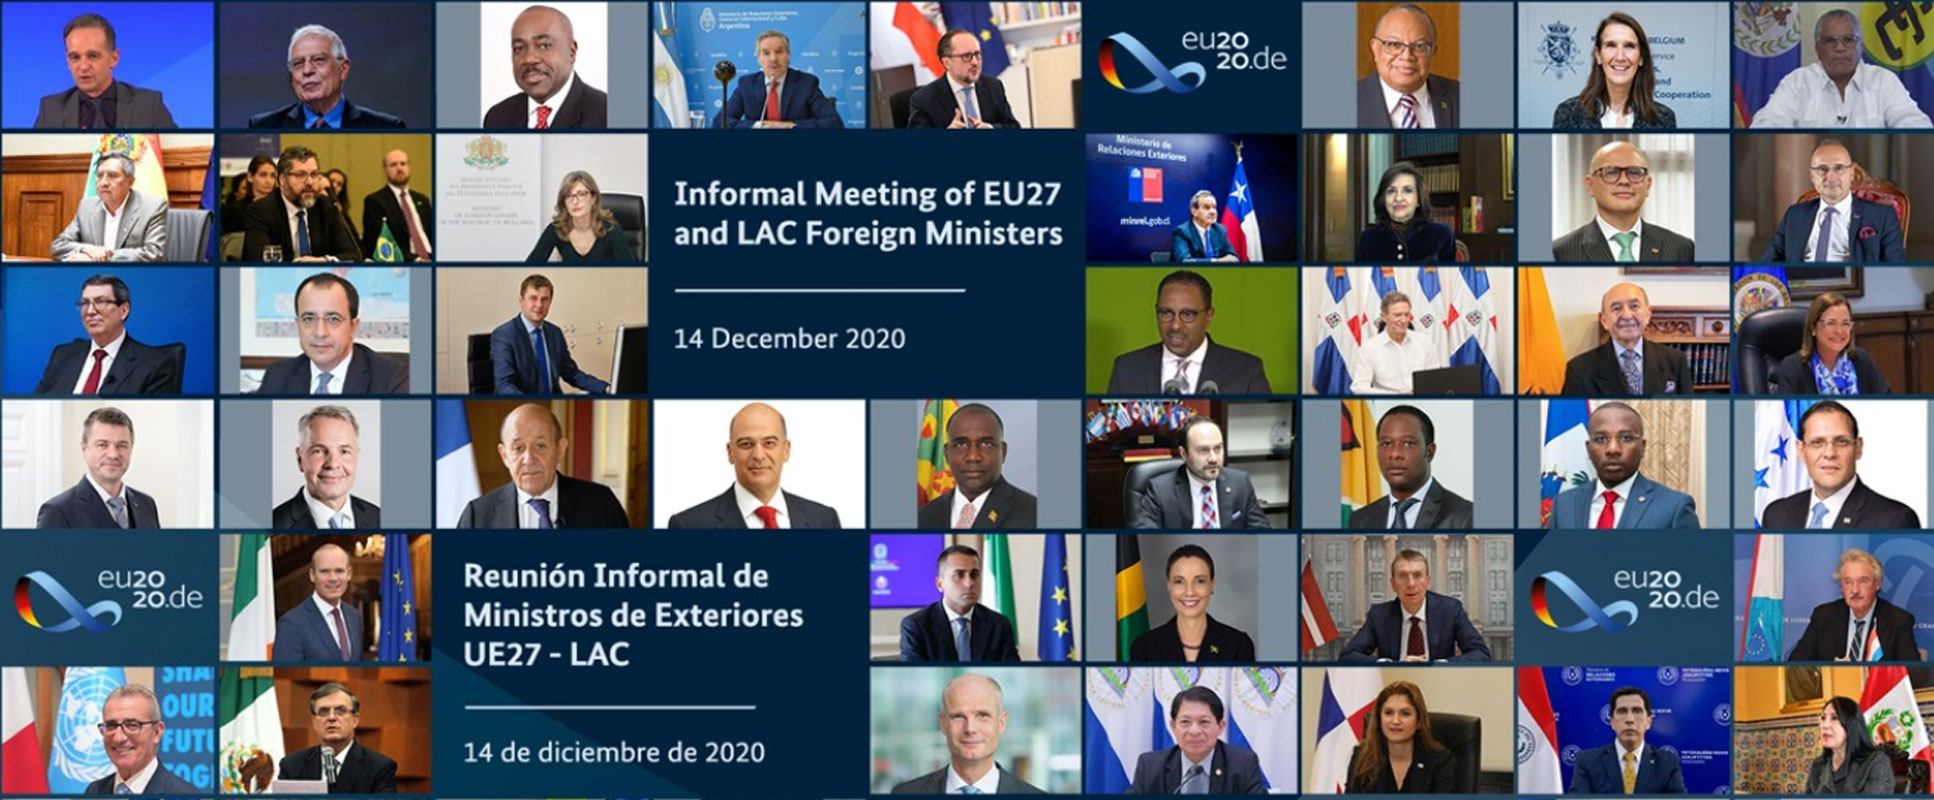 ECLAC: Concrete Opportunities Exist for Deepening the Partnership between Latin America and the Caribbean and the European Union with a View to a Green, Digital, Sustainable and Inclusive Recovery